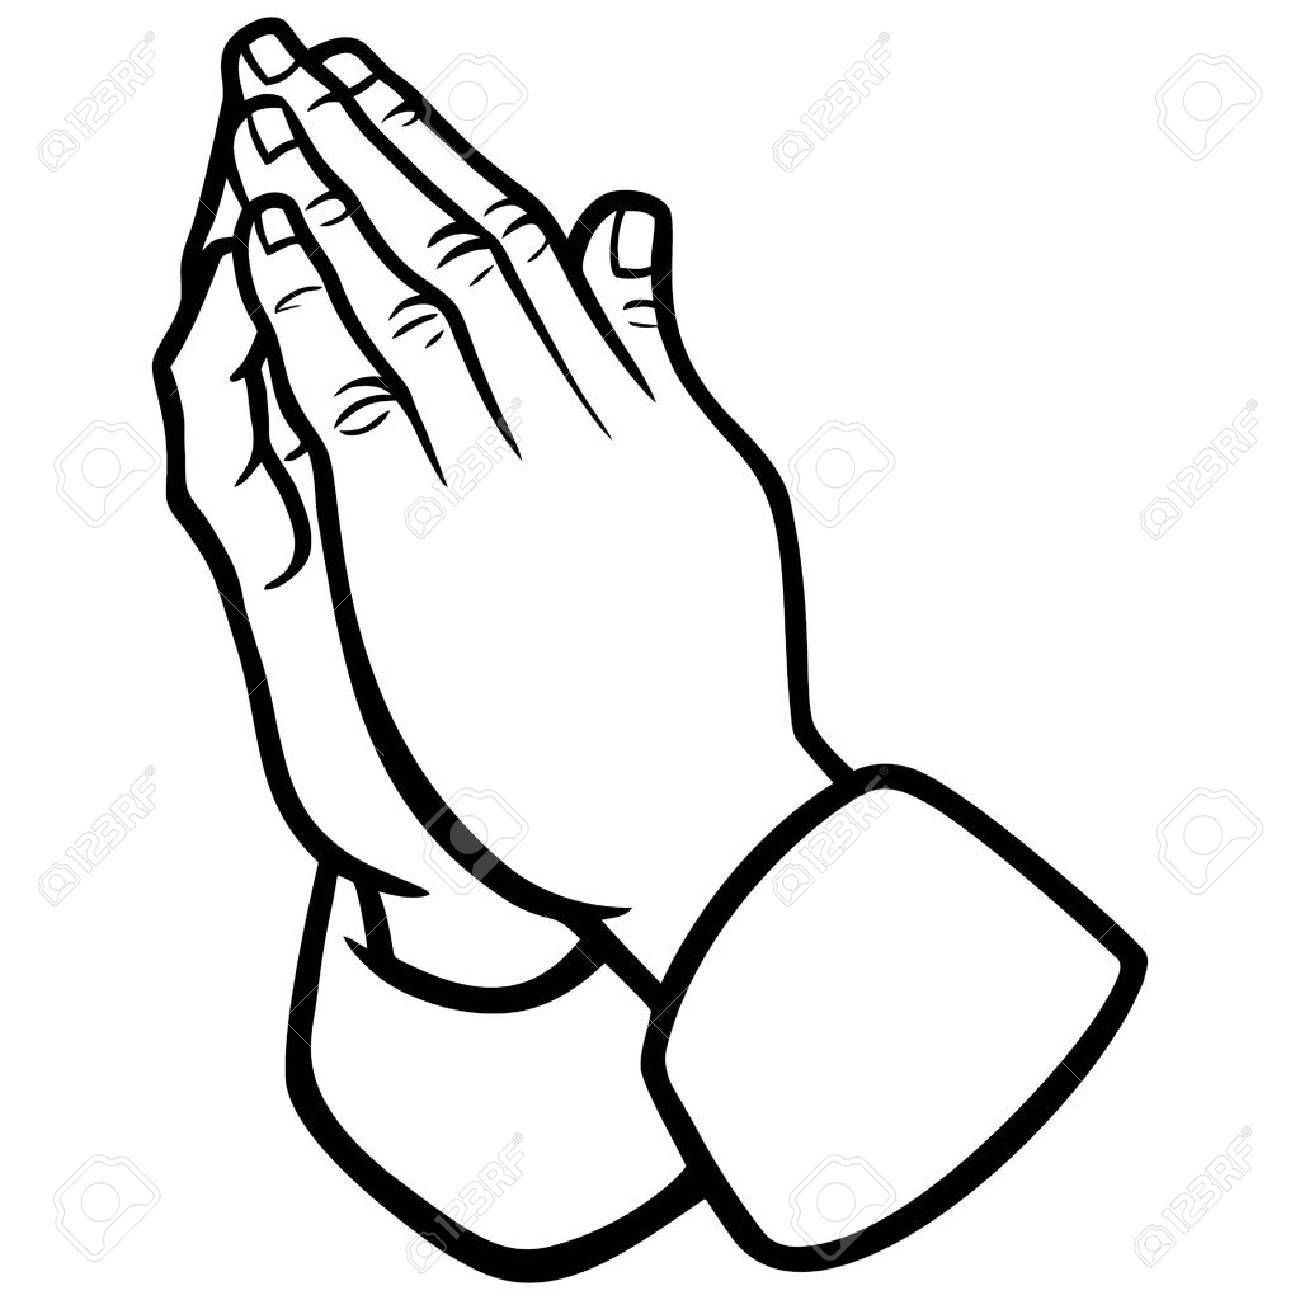 Praying Hands Illustration Royalty Free Cliparts Vectors And